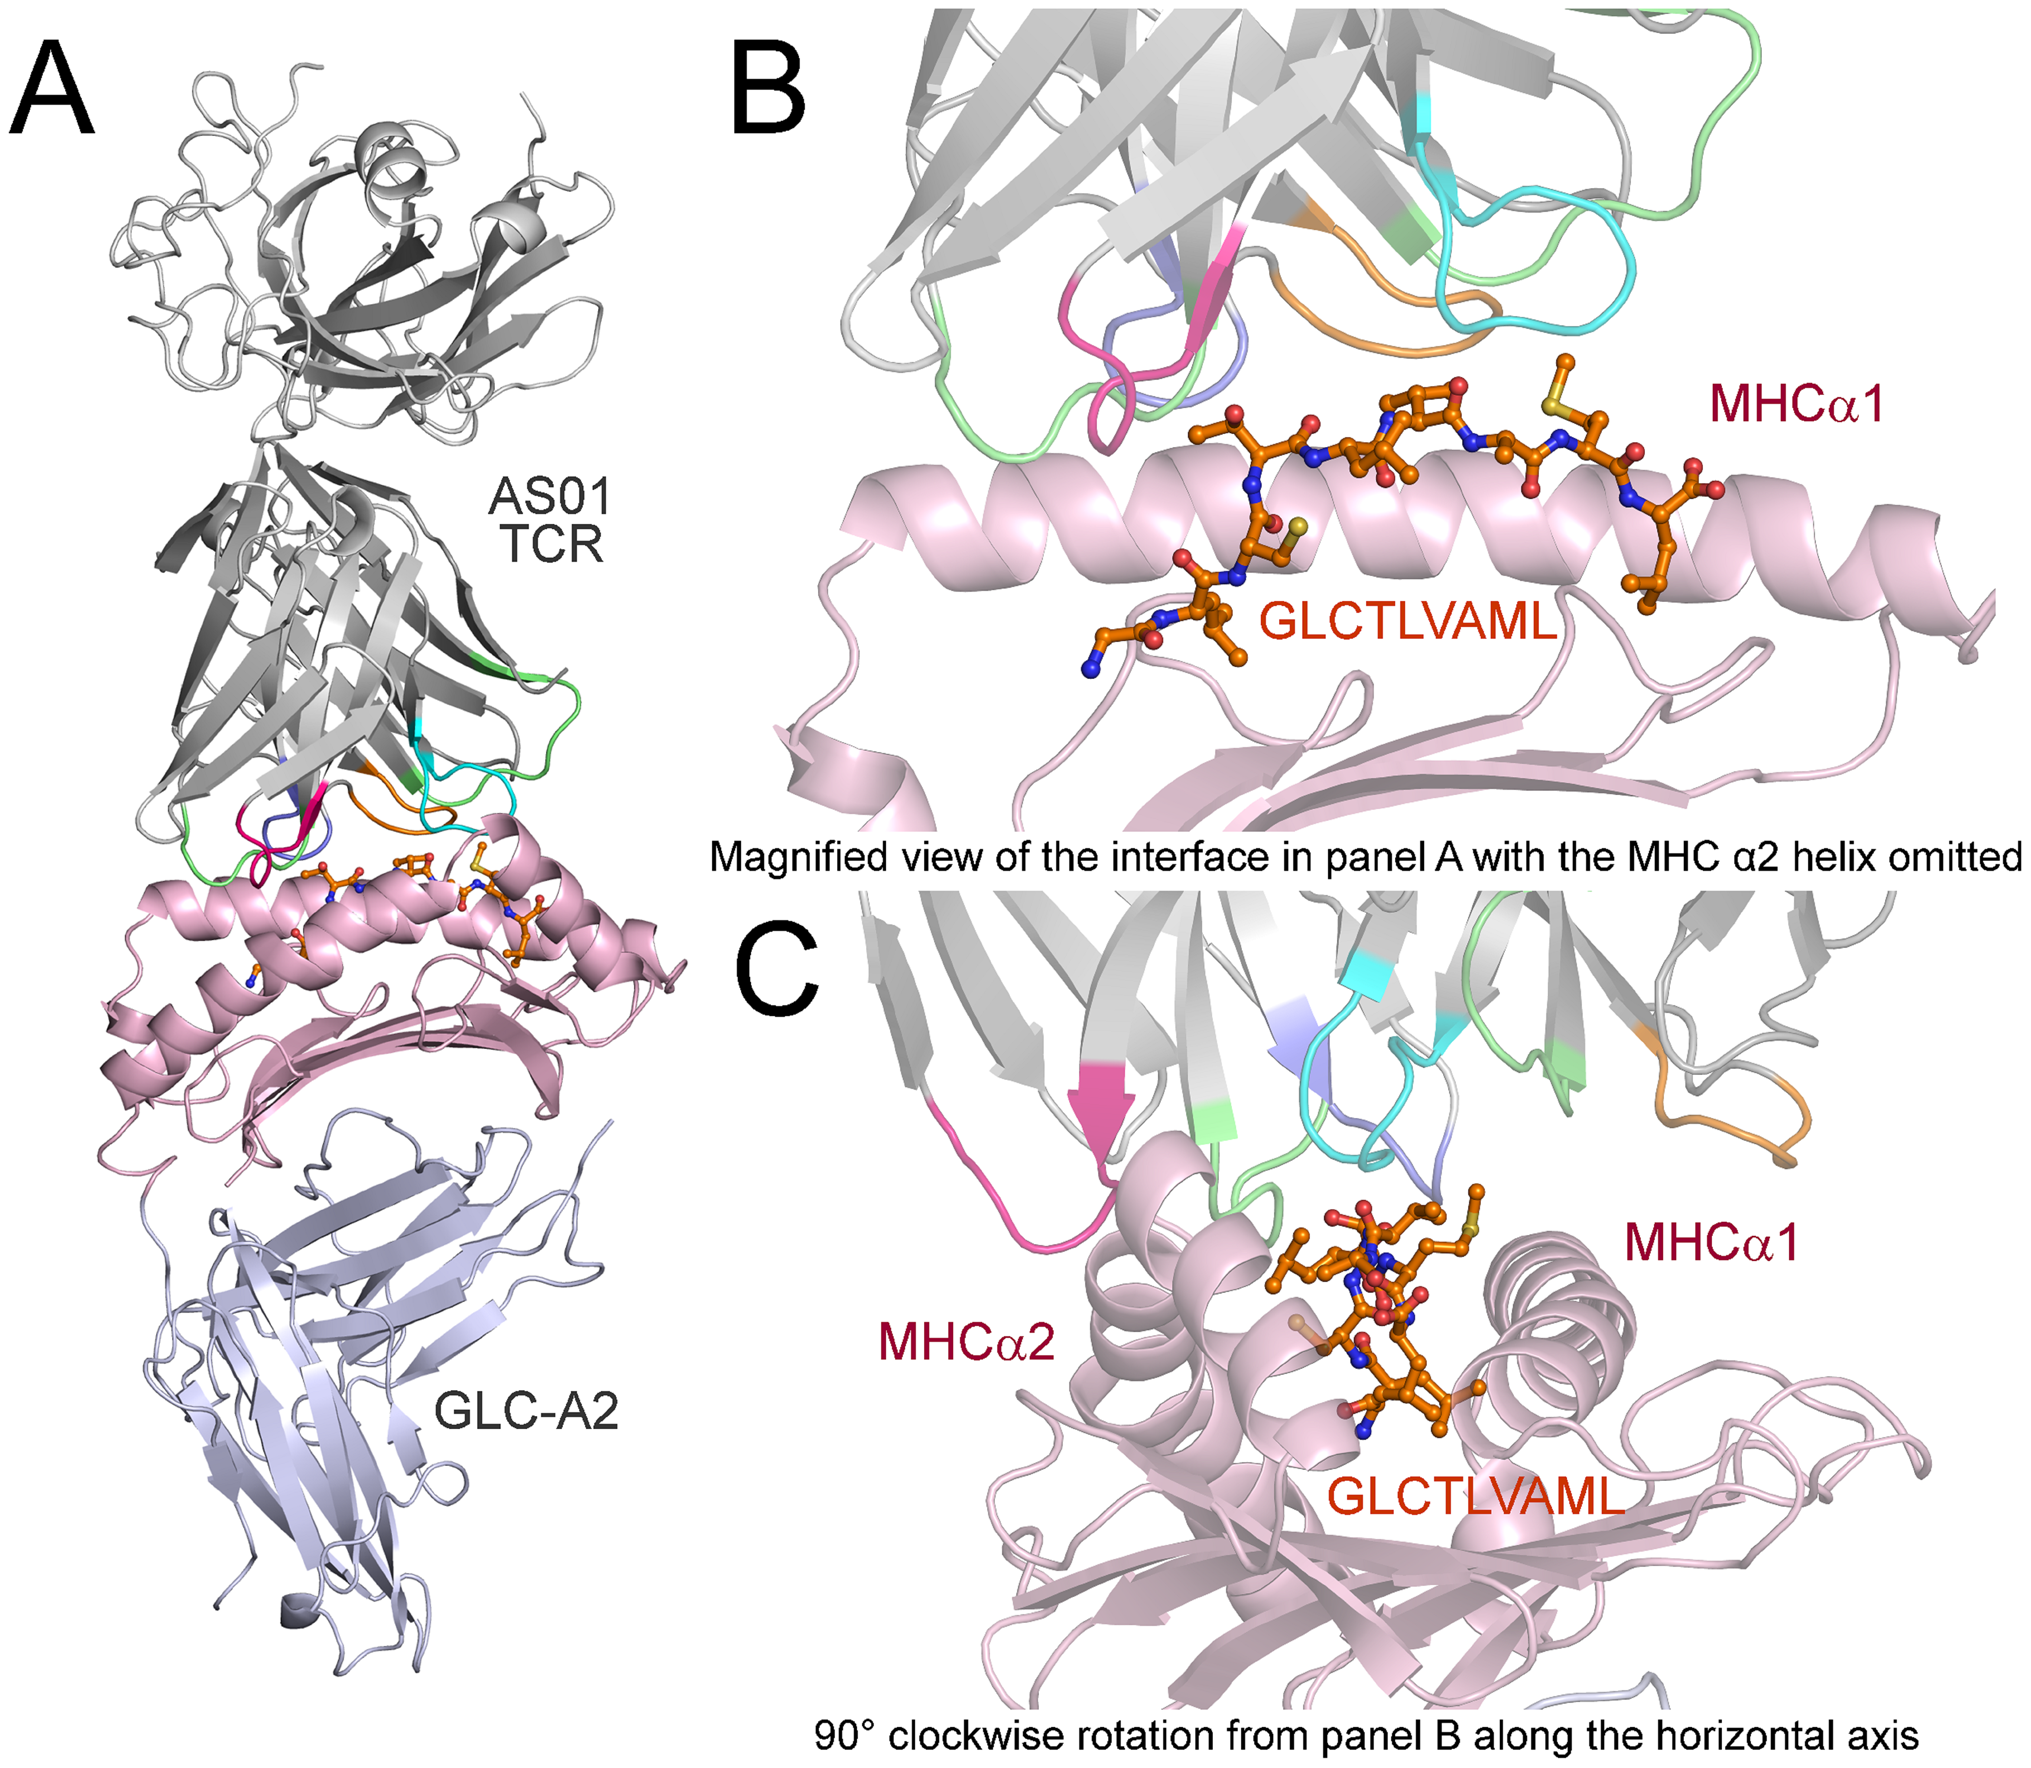 Overview of the AS01-GLC-A2 complex structure.